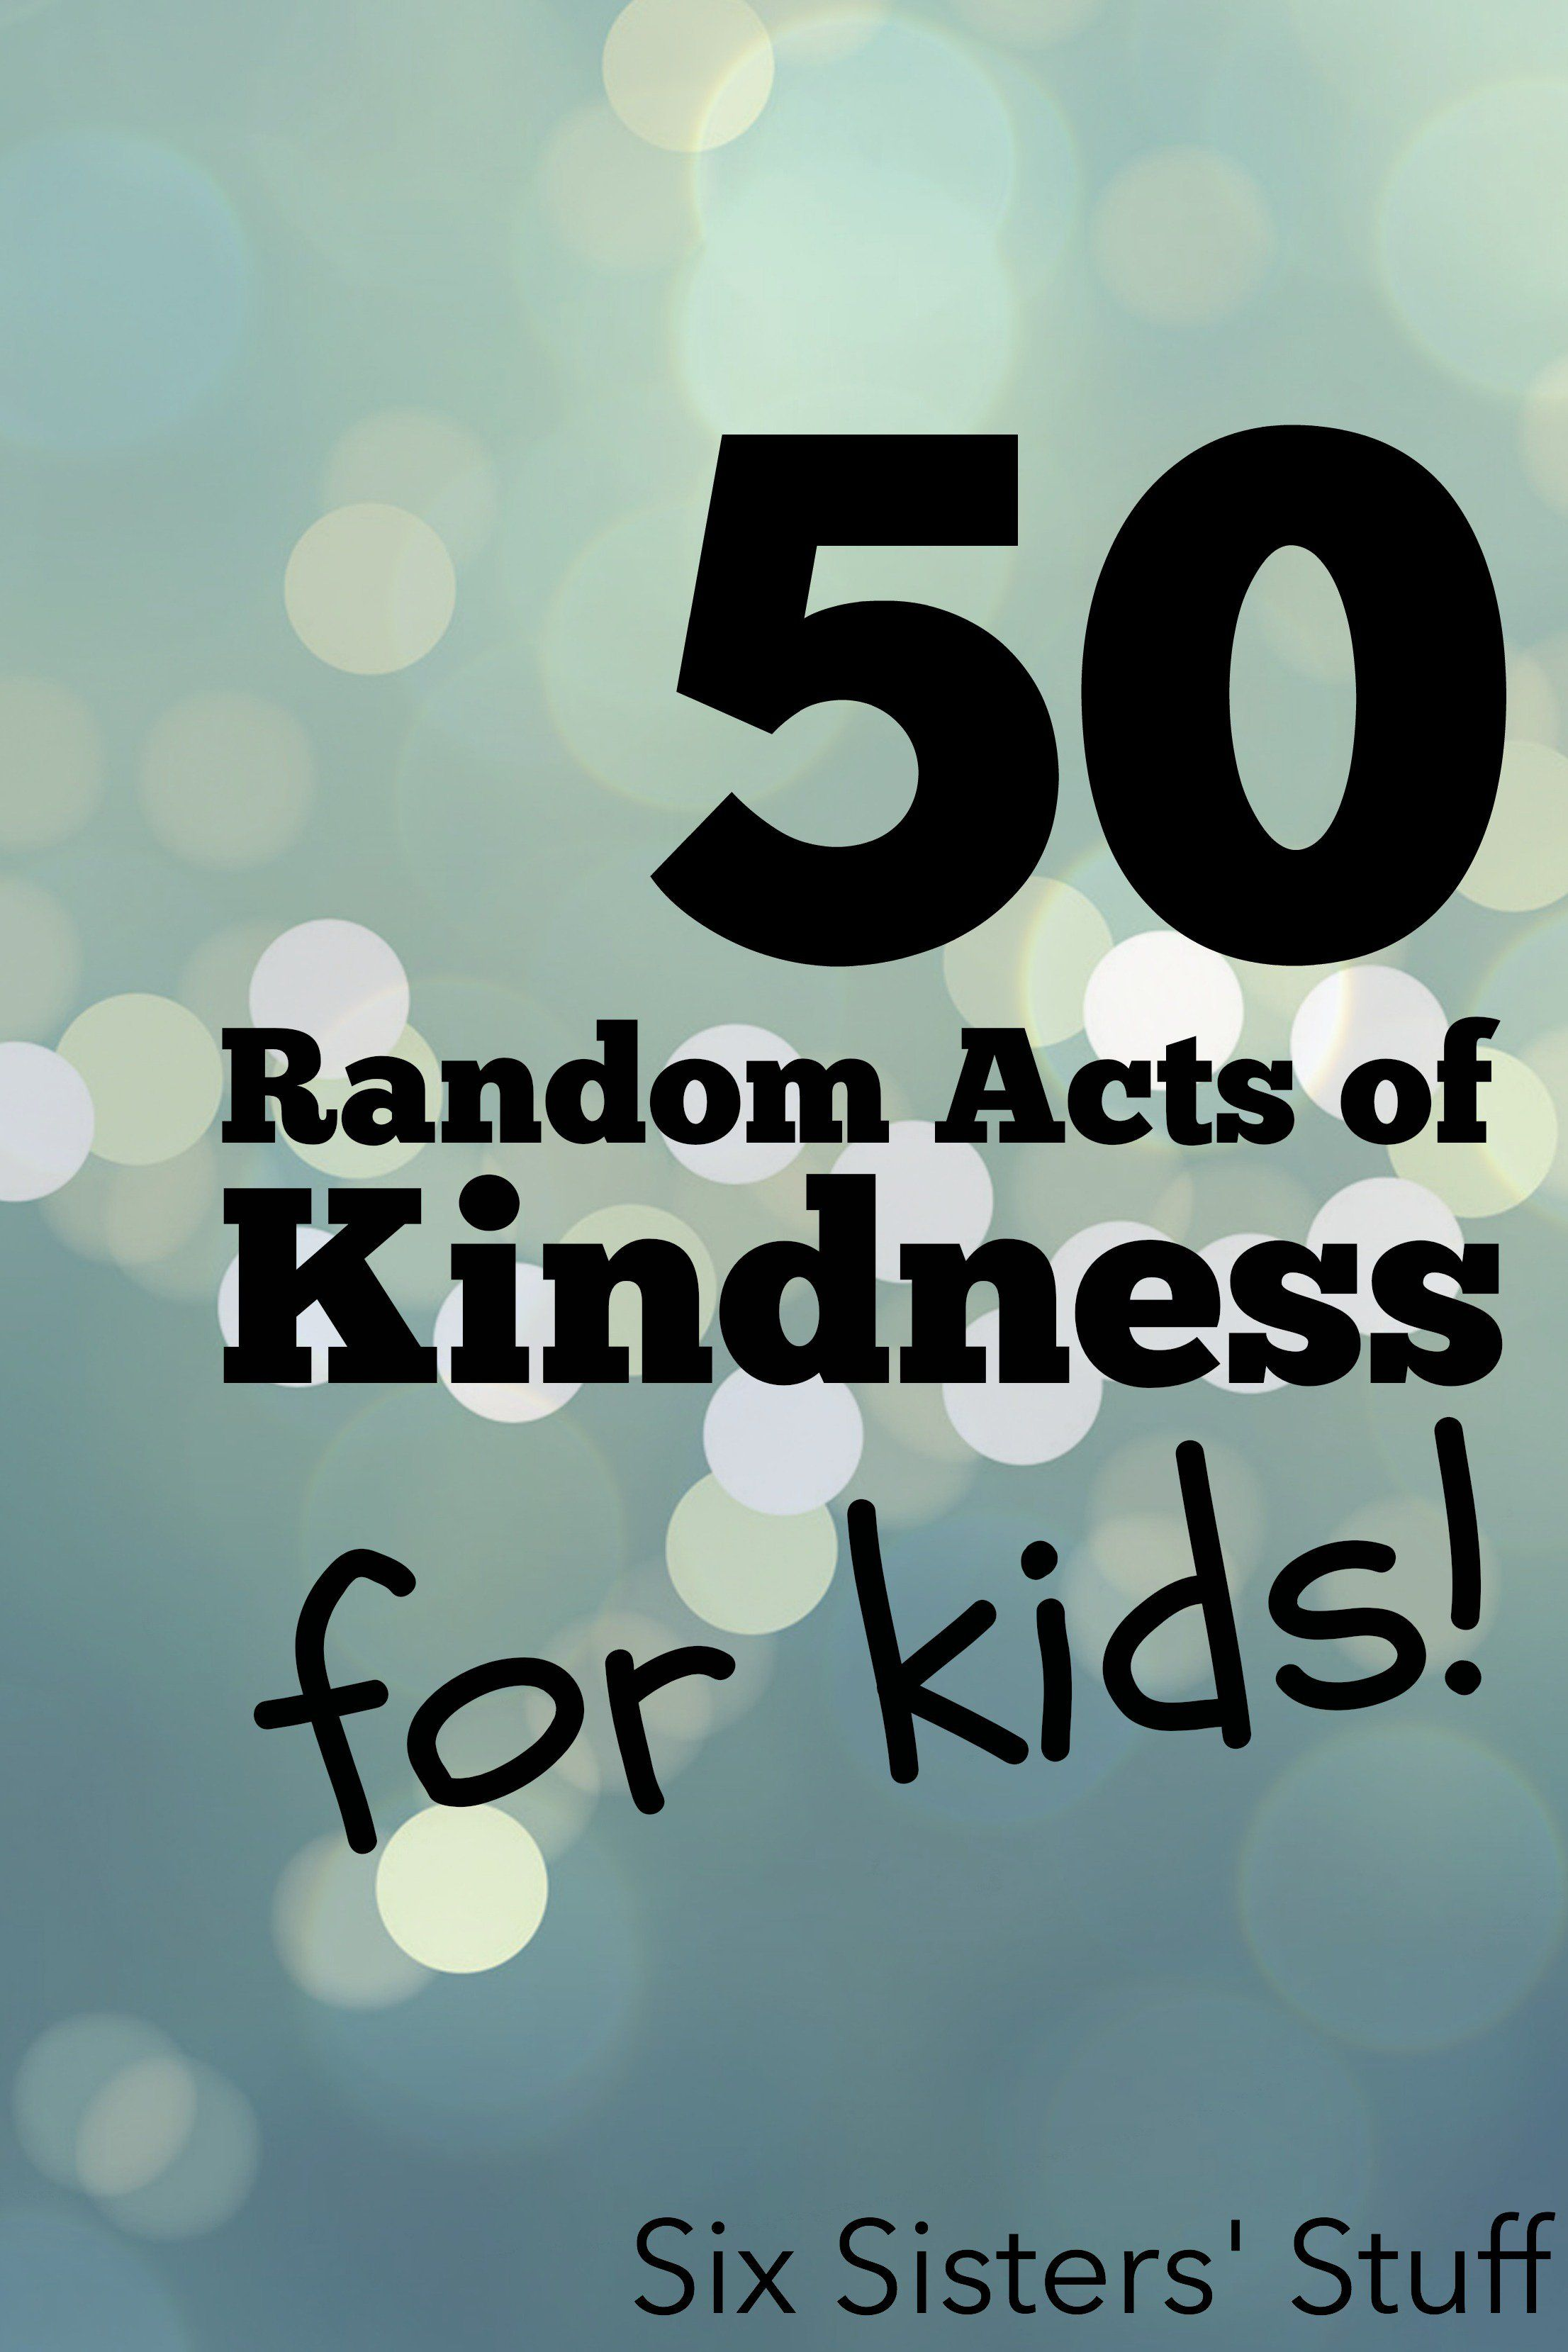 50 Random Acts of Kindness for Christmas Kindness for